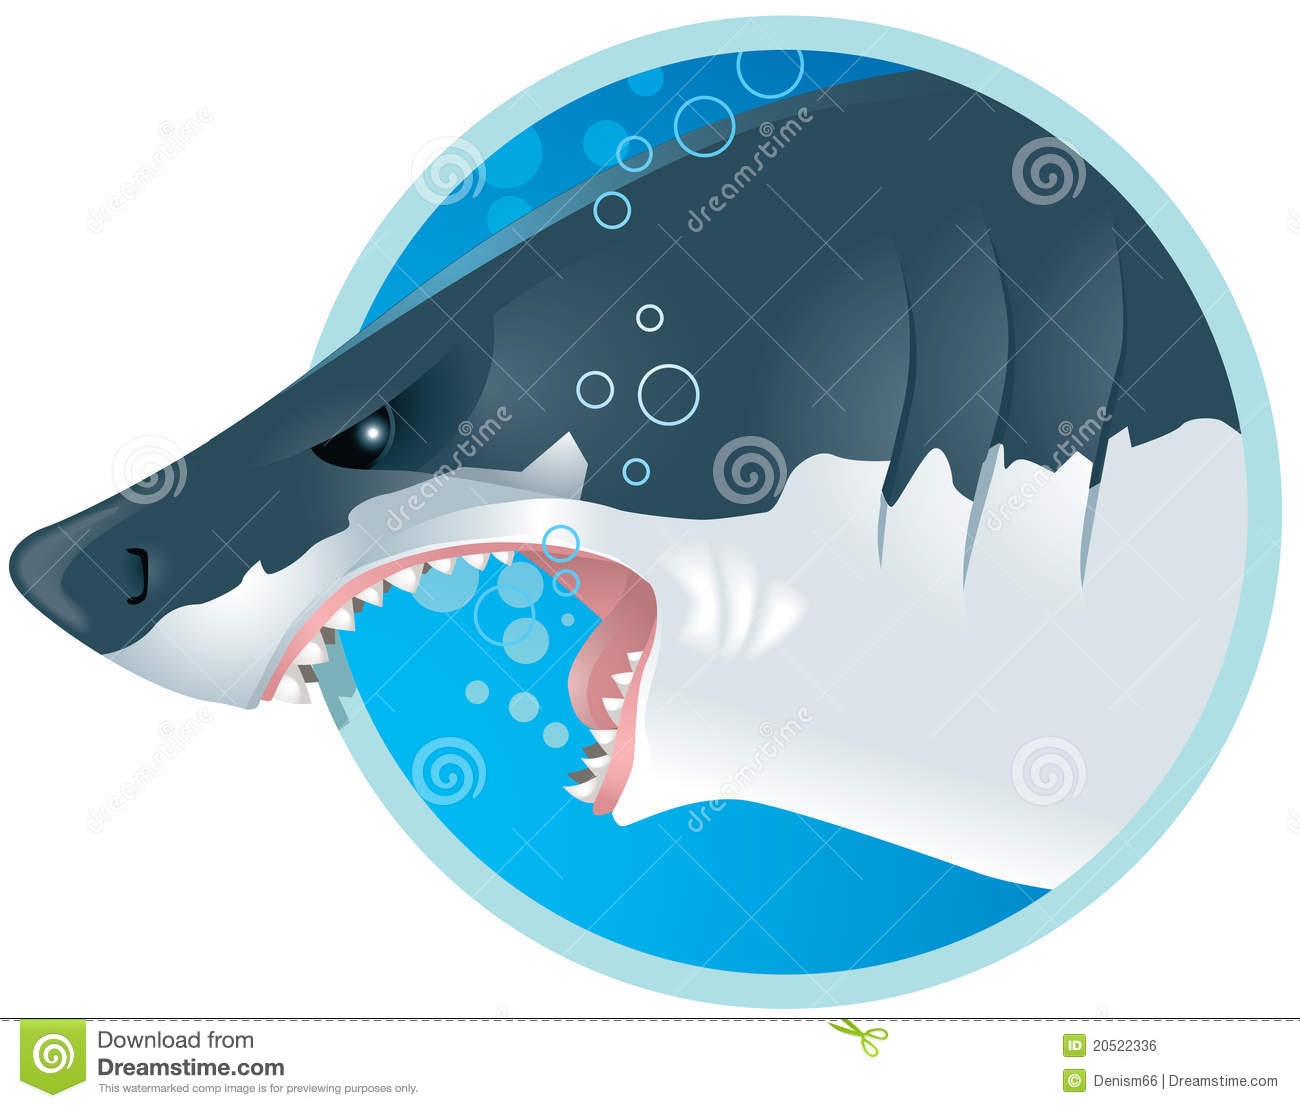 Shark Growl: Shark Stock Vector. Illustration Of Beast, Felidae, Threat